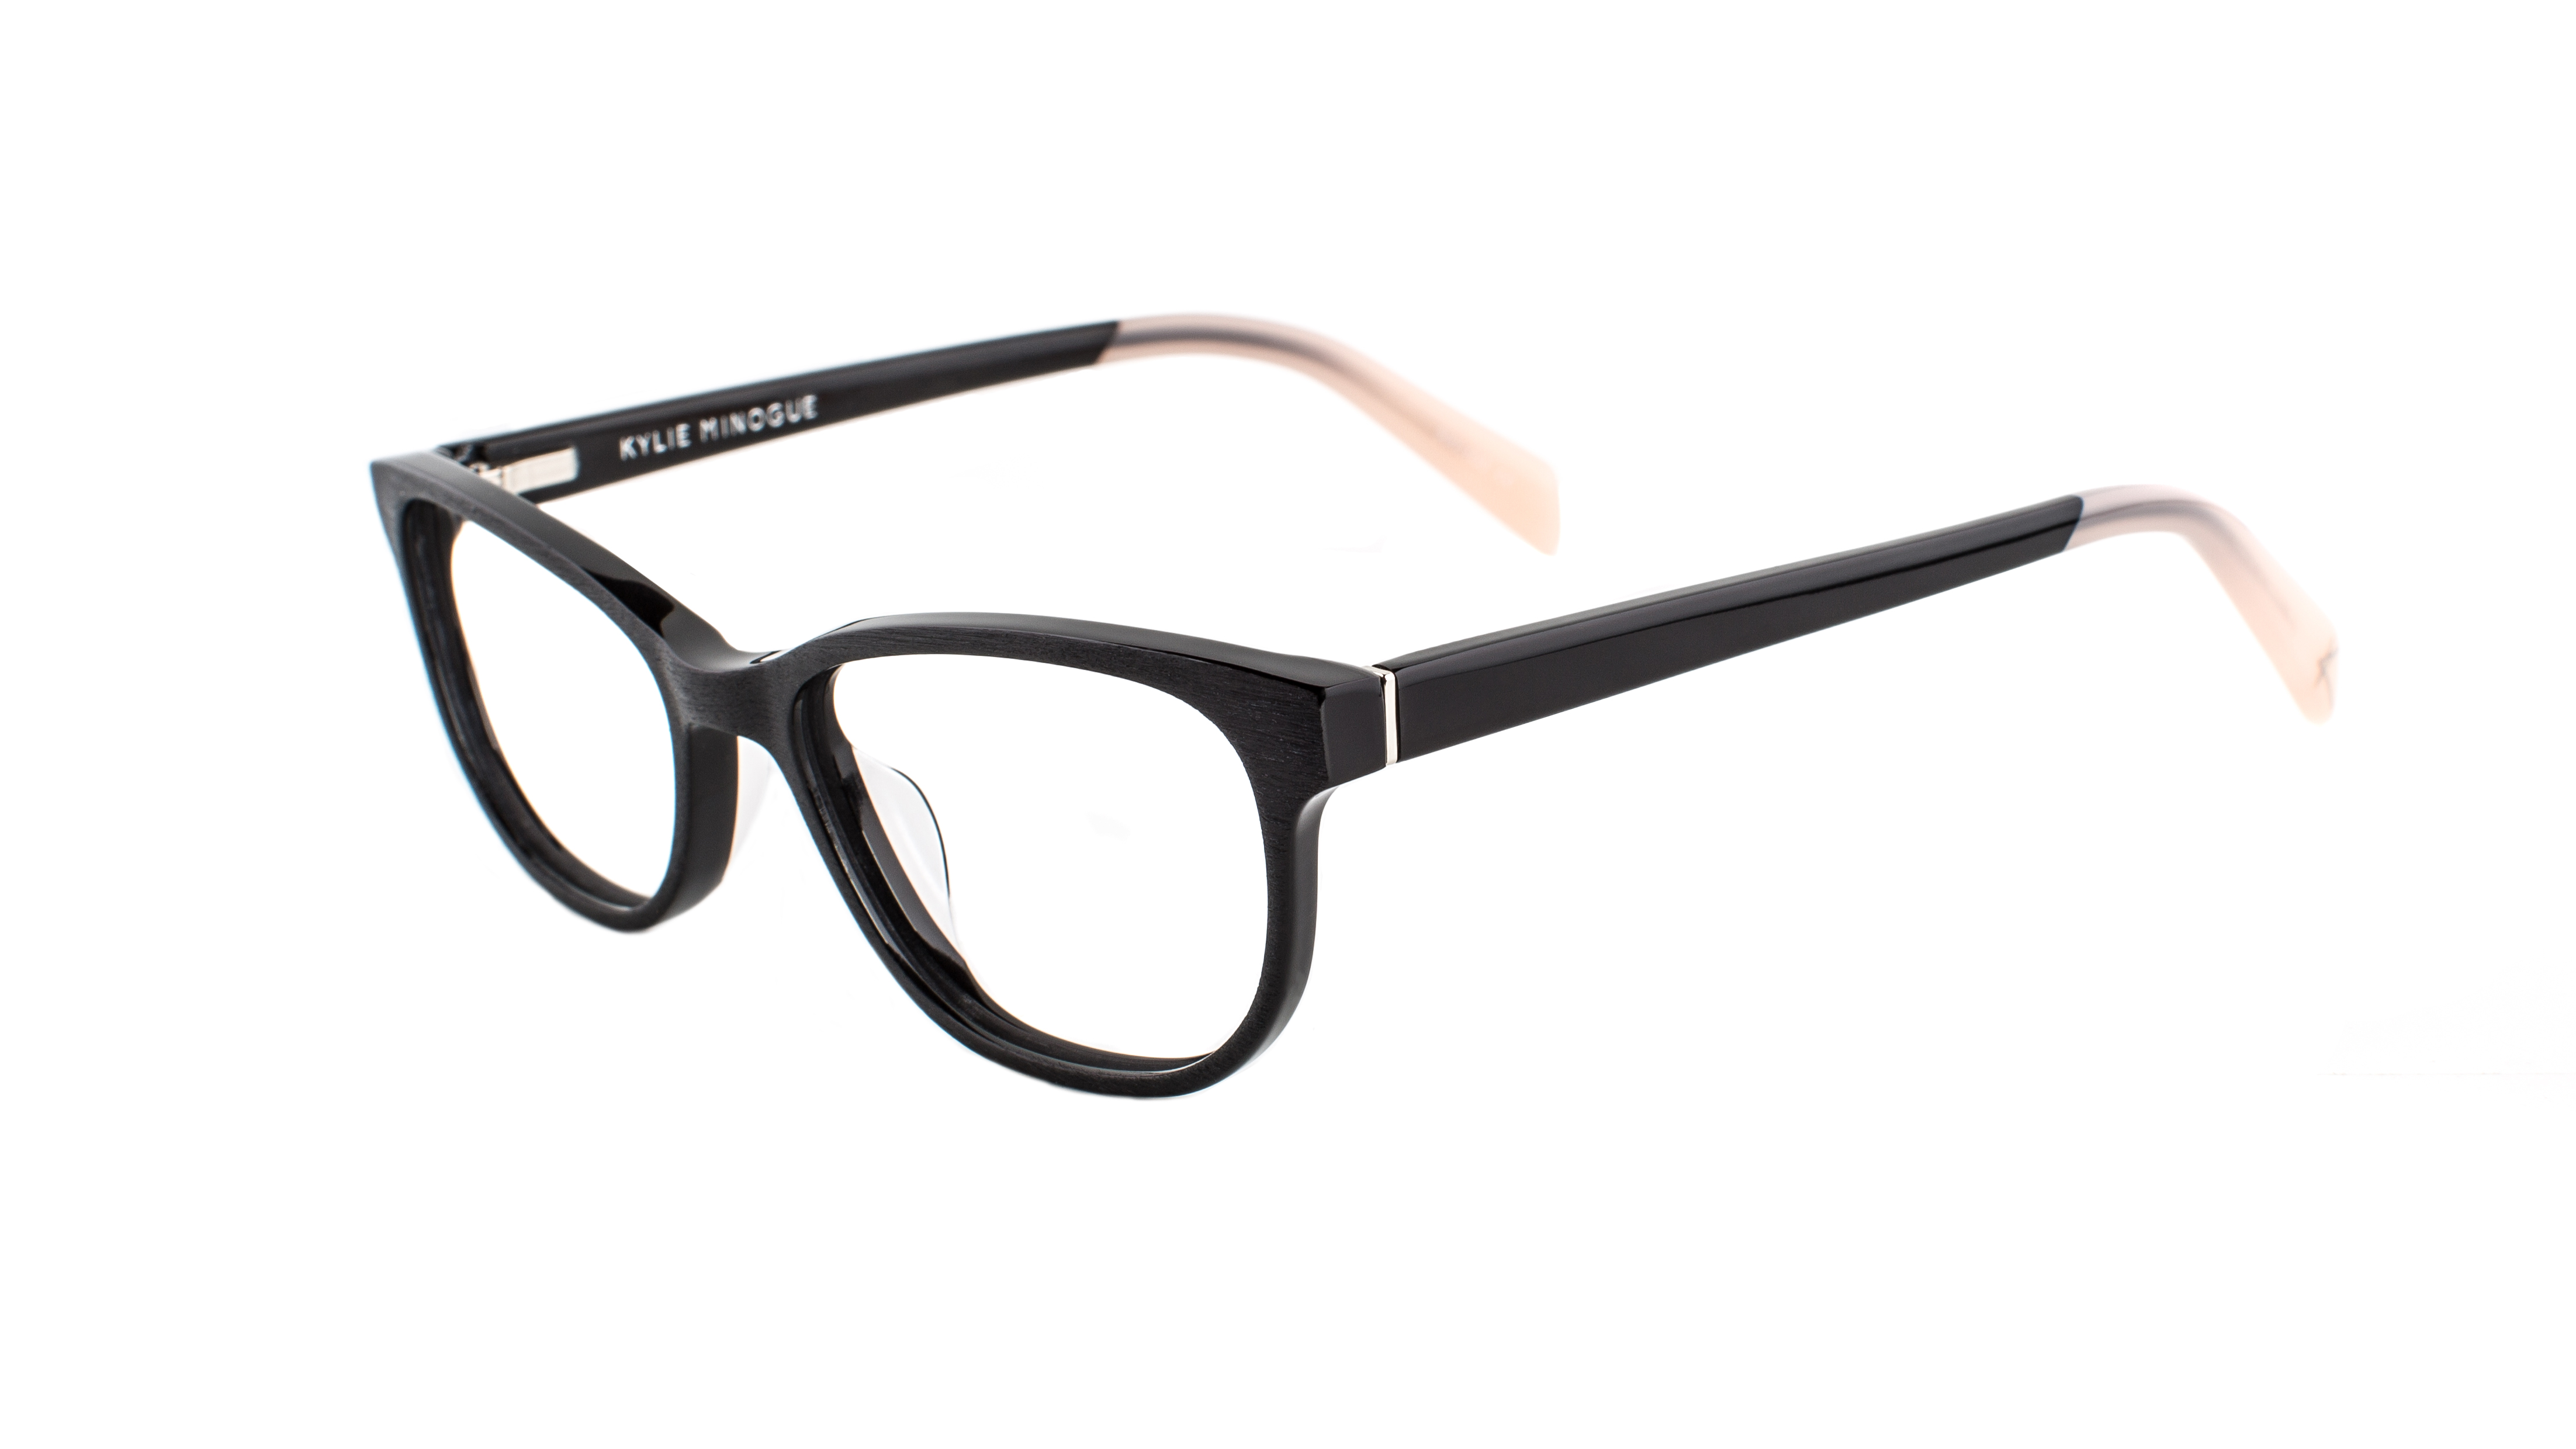 Kylie Minogue Eyewear_Kylie 03_SKU 30520127_RRP 2 pairs from $299 (2)